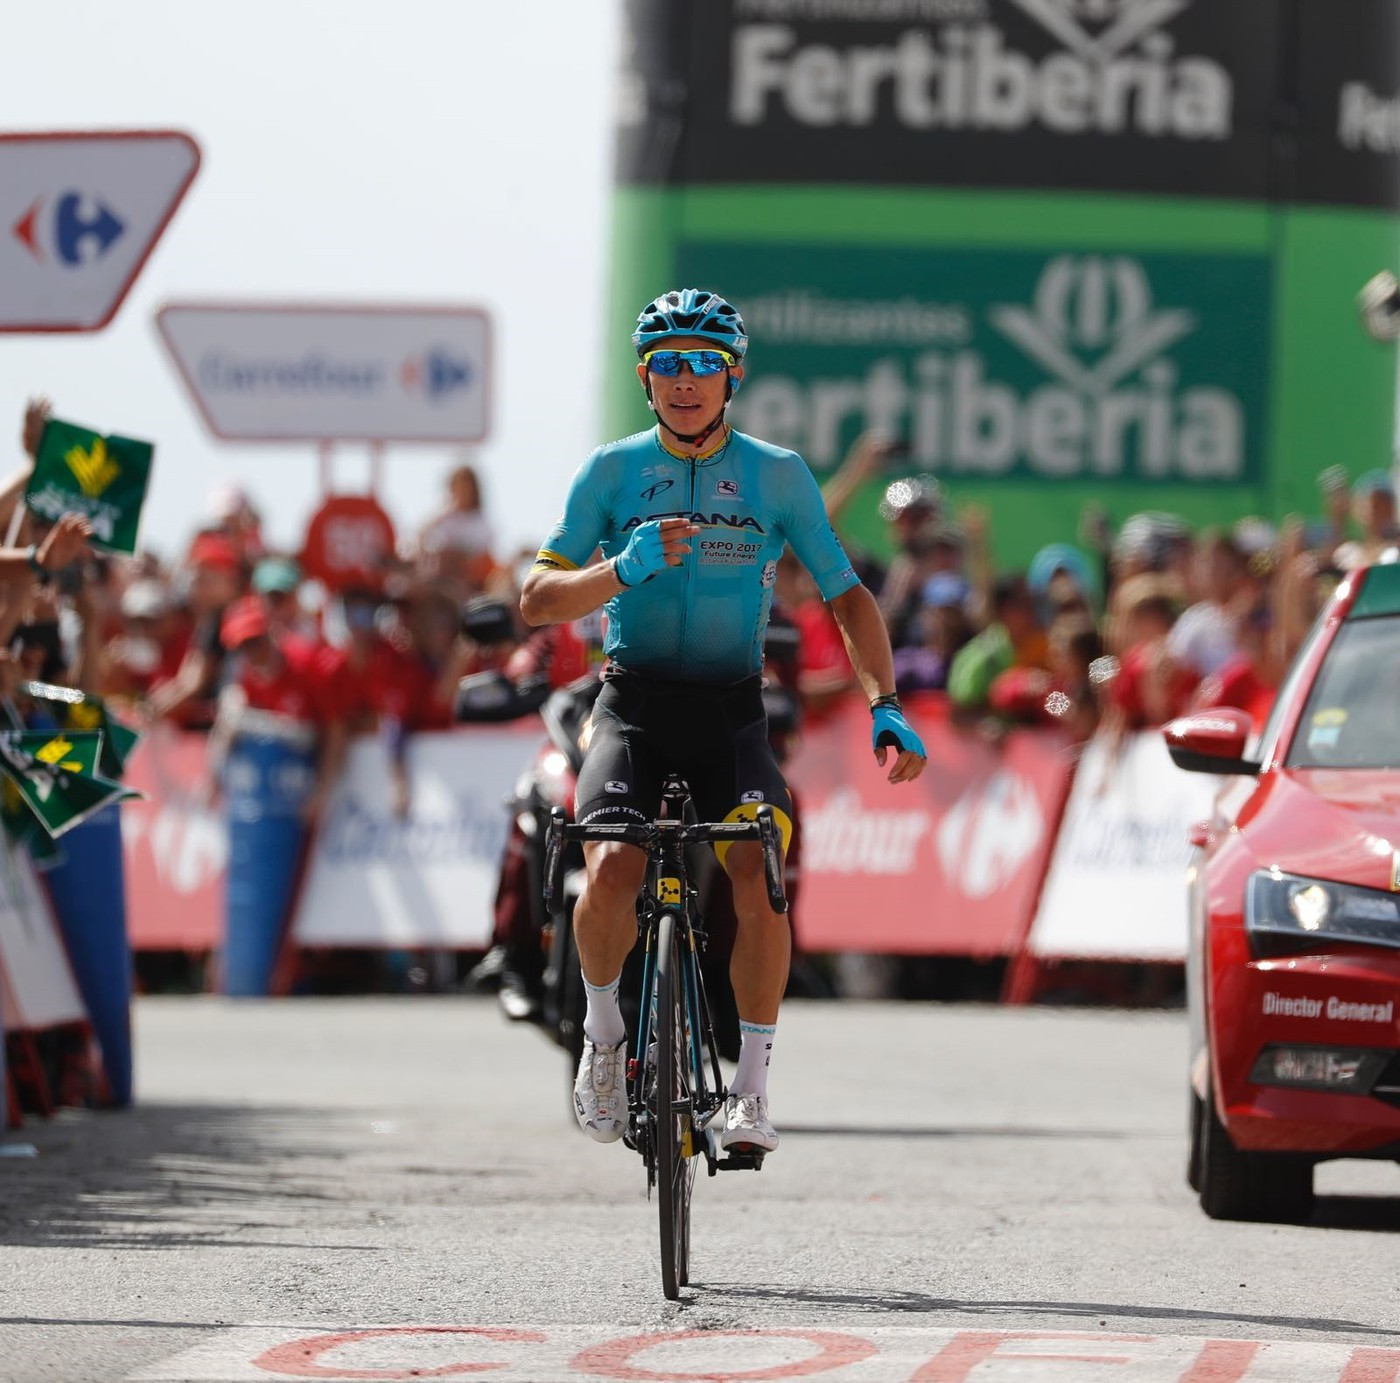 Miguel Angel Lopez wins 15th Vuelta stage, Froome keeps lead